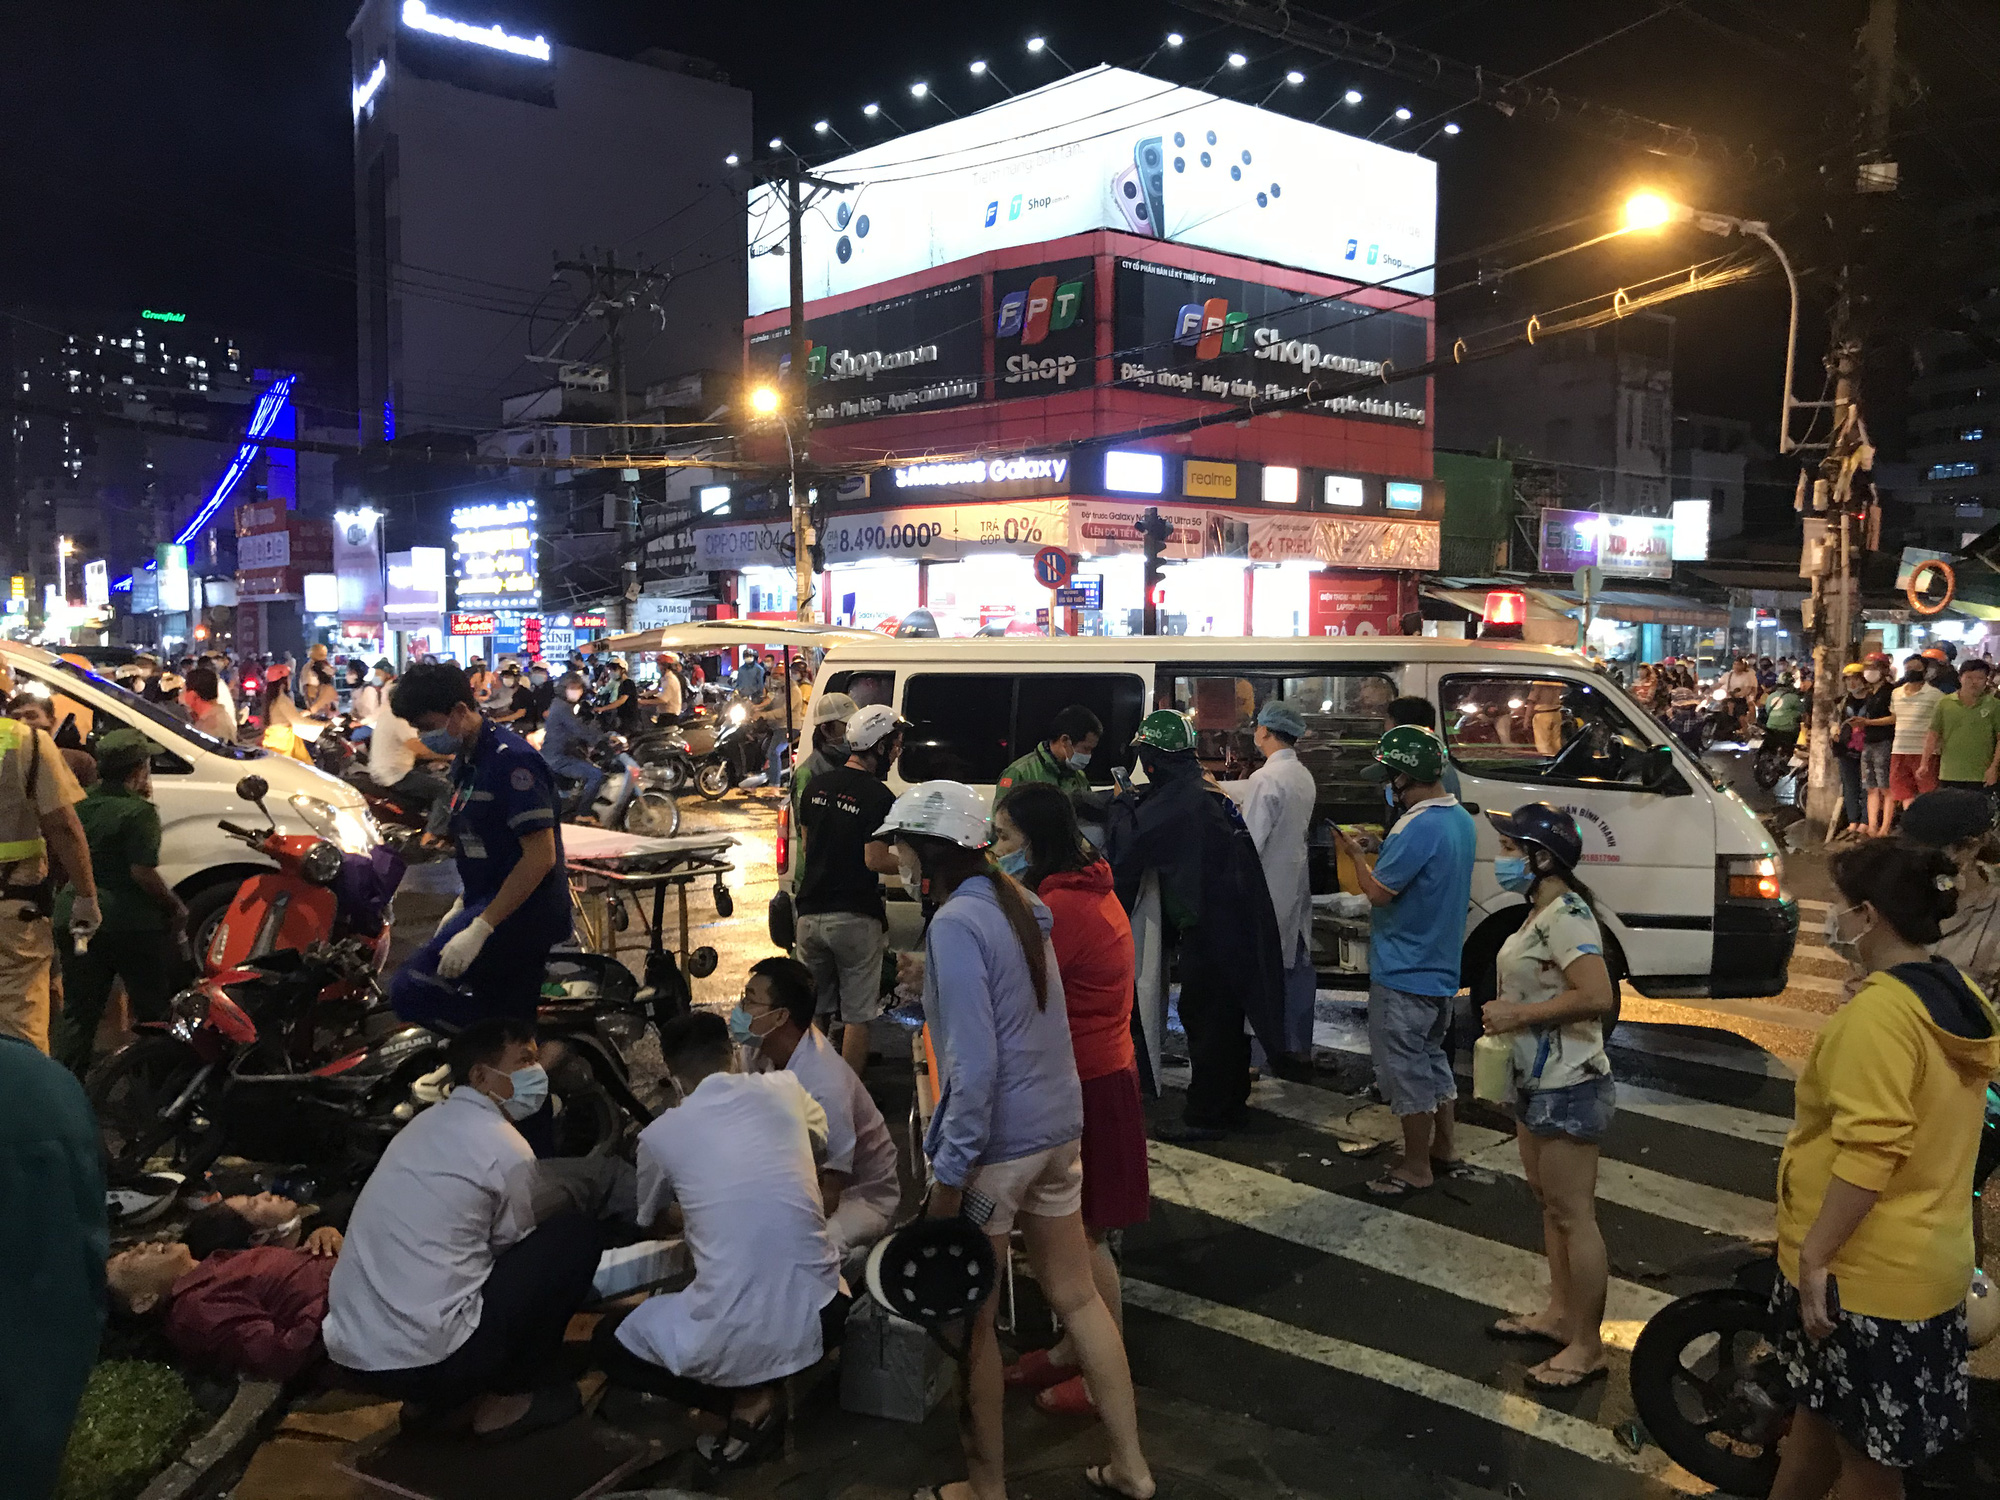 10 injured as car plows into motorbikes at red light in Saigon